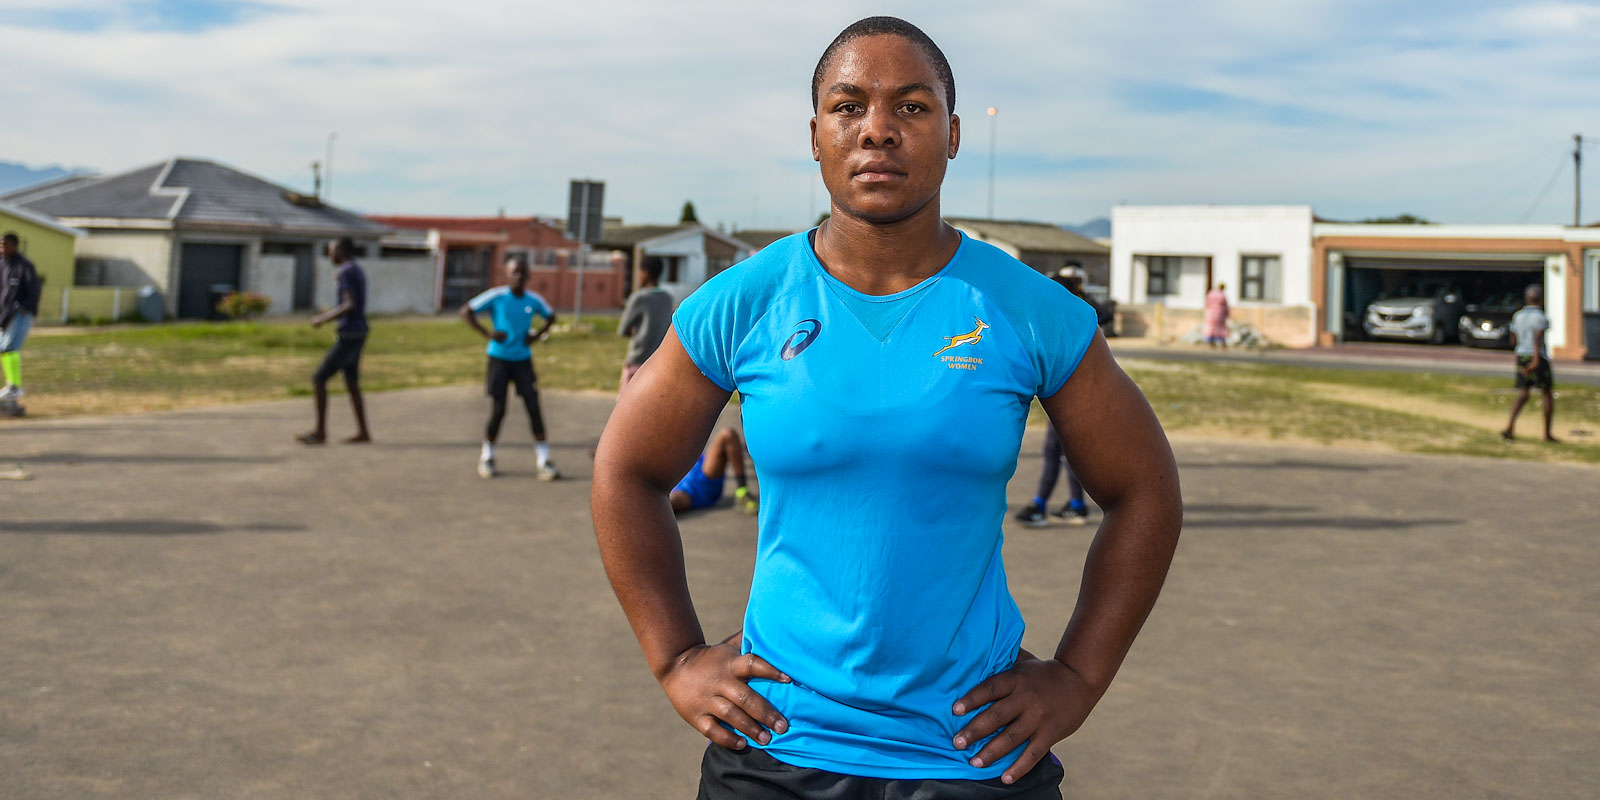 Babalwa Latsha embraces her new role off the field